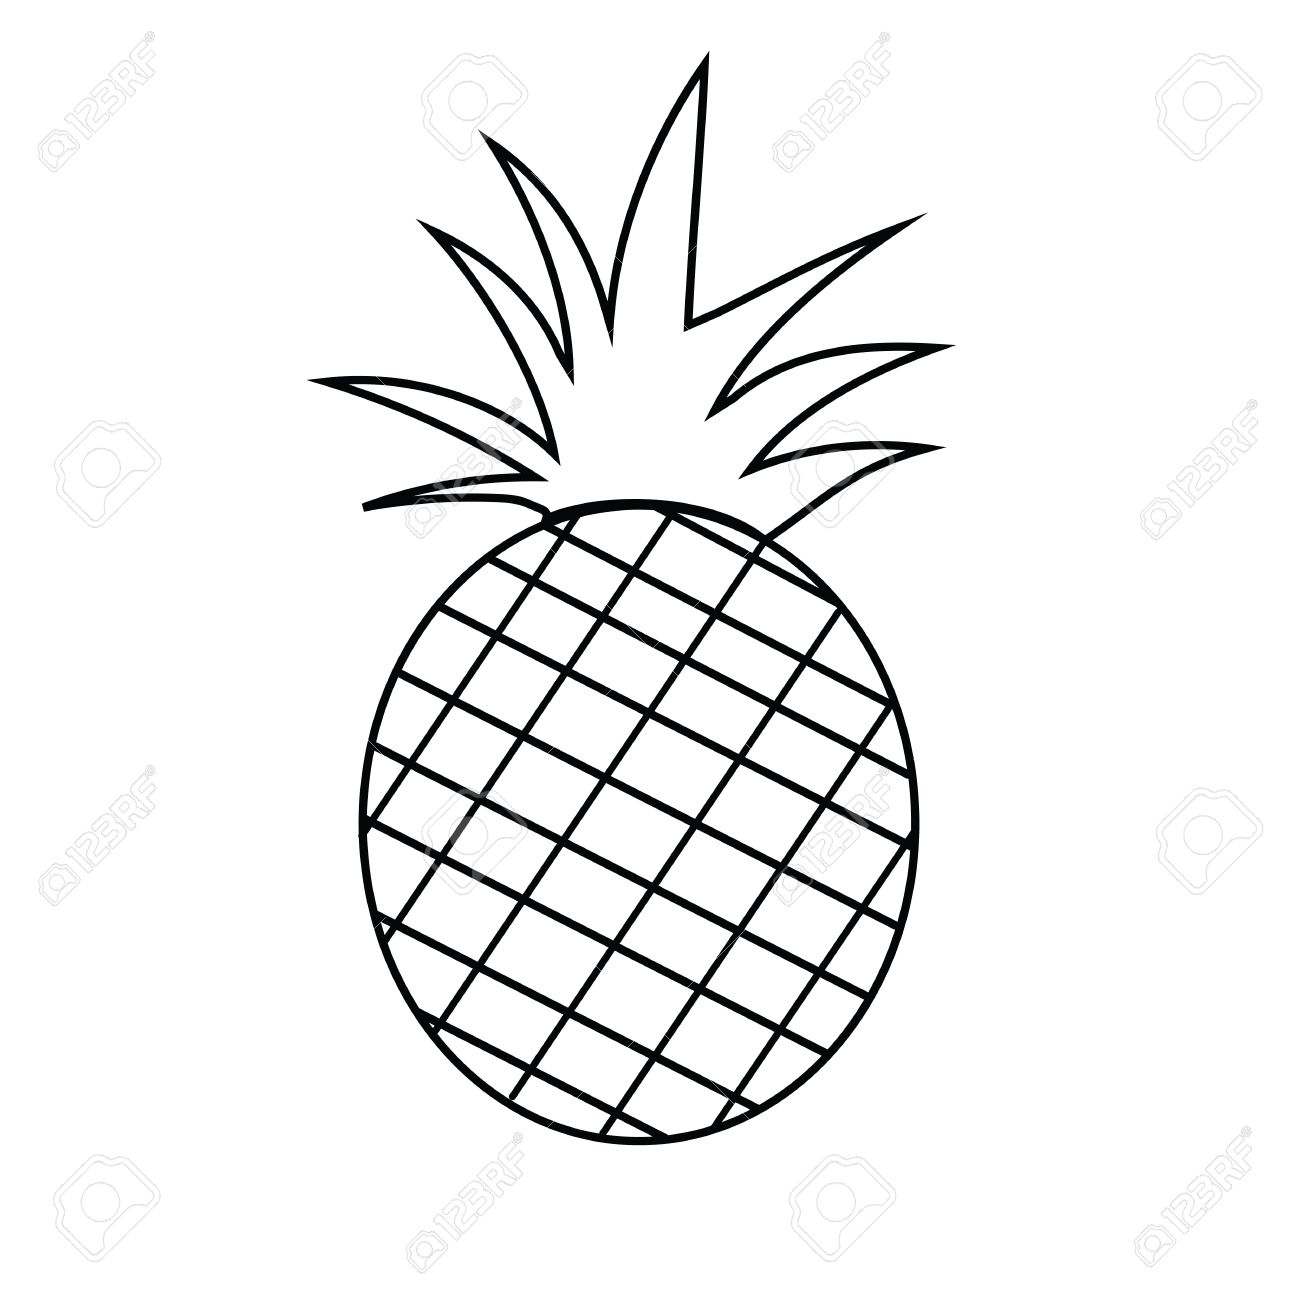 1300x1300 Pineapple Fruit Outline Version For Coloring Book Vector